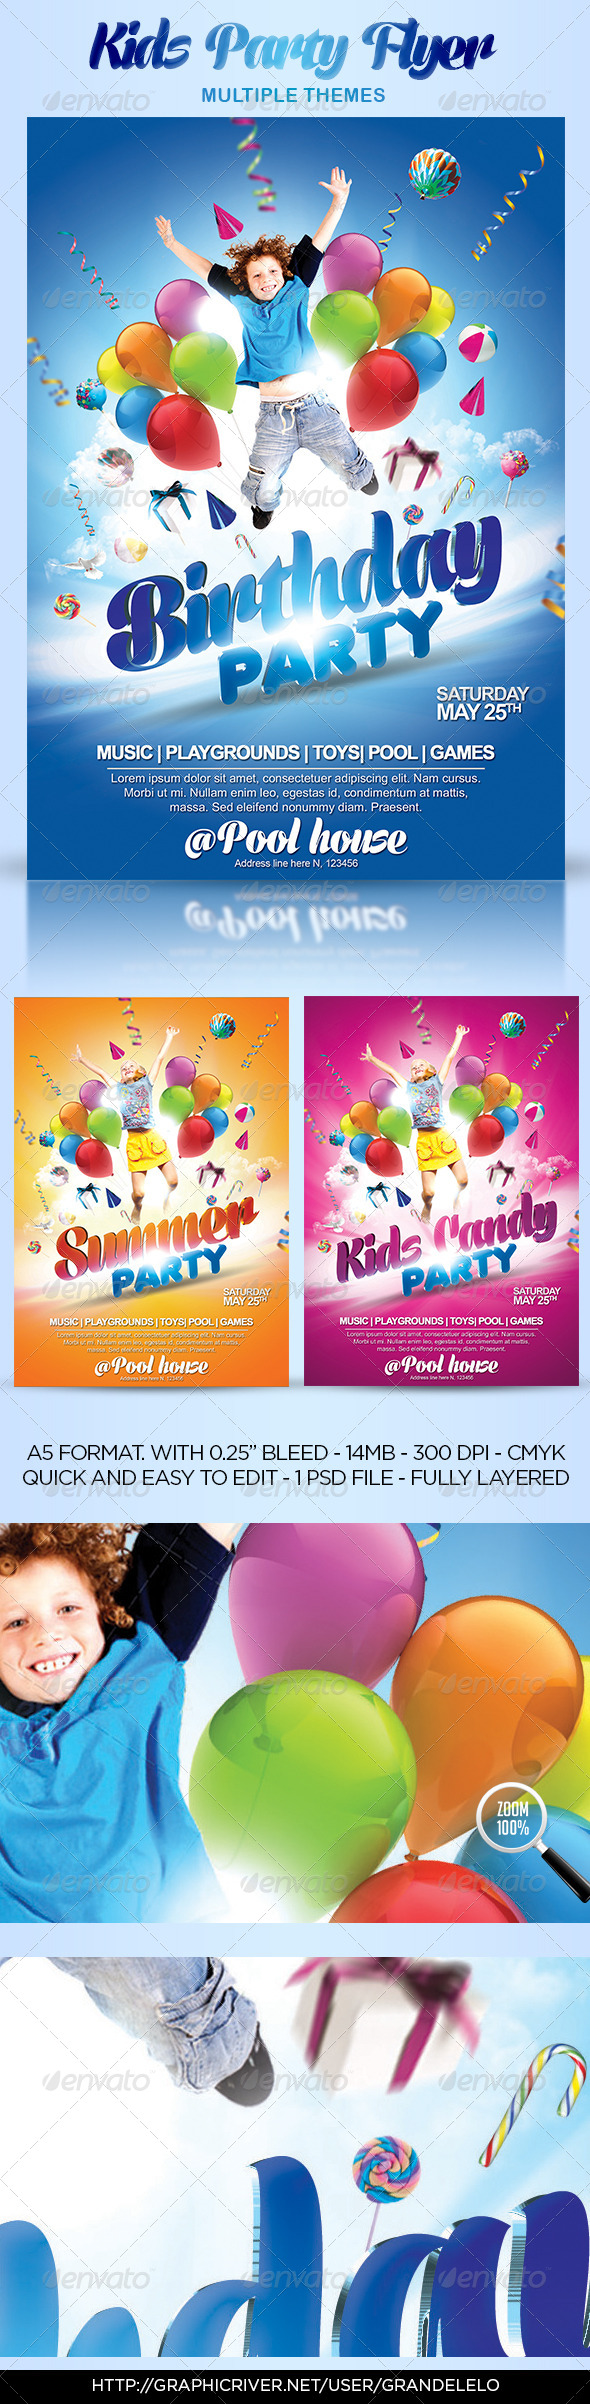 Kids party flyer themes